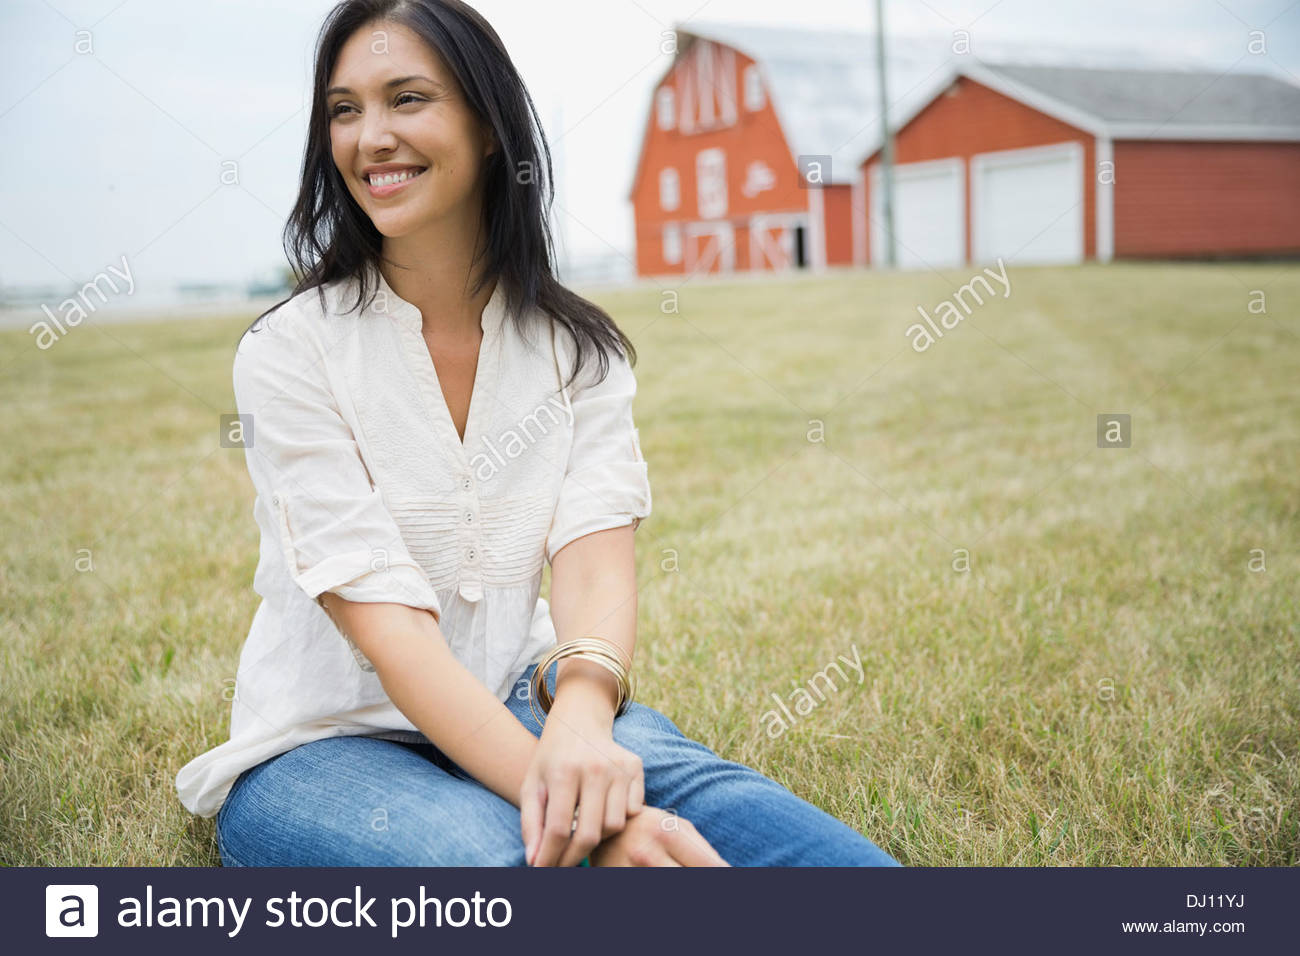 Smiling woman sitting outdoors Photo Stock